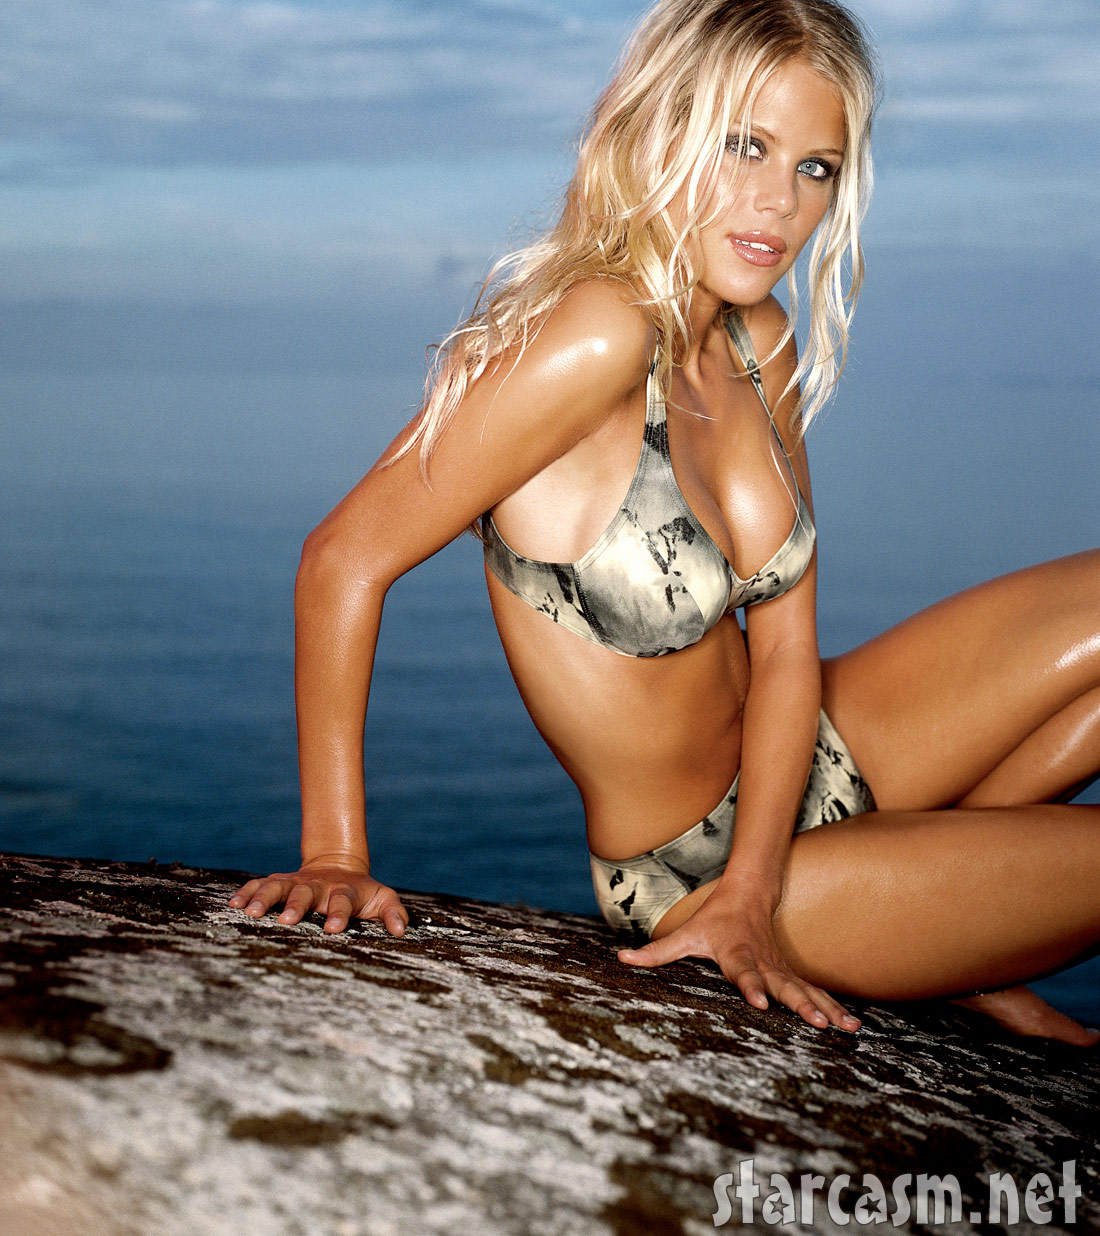 Tiger woods wife nude modeling pictures